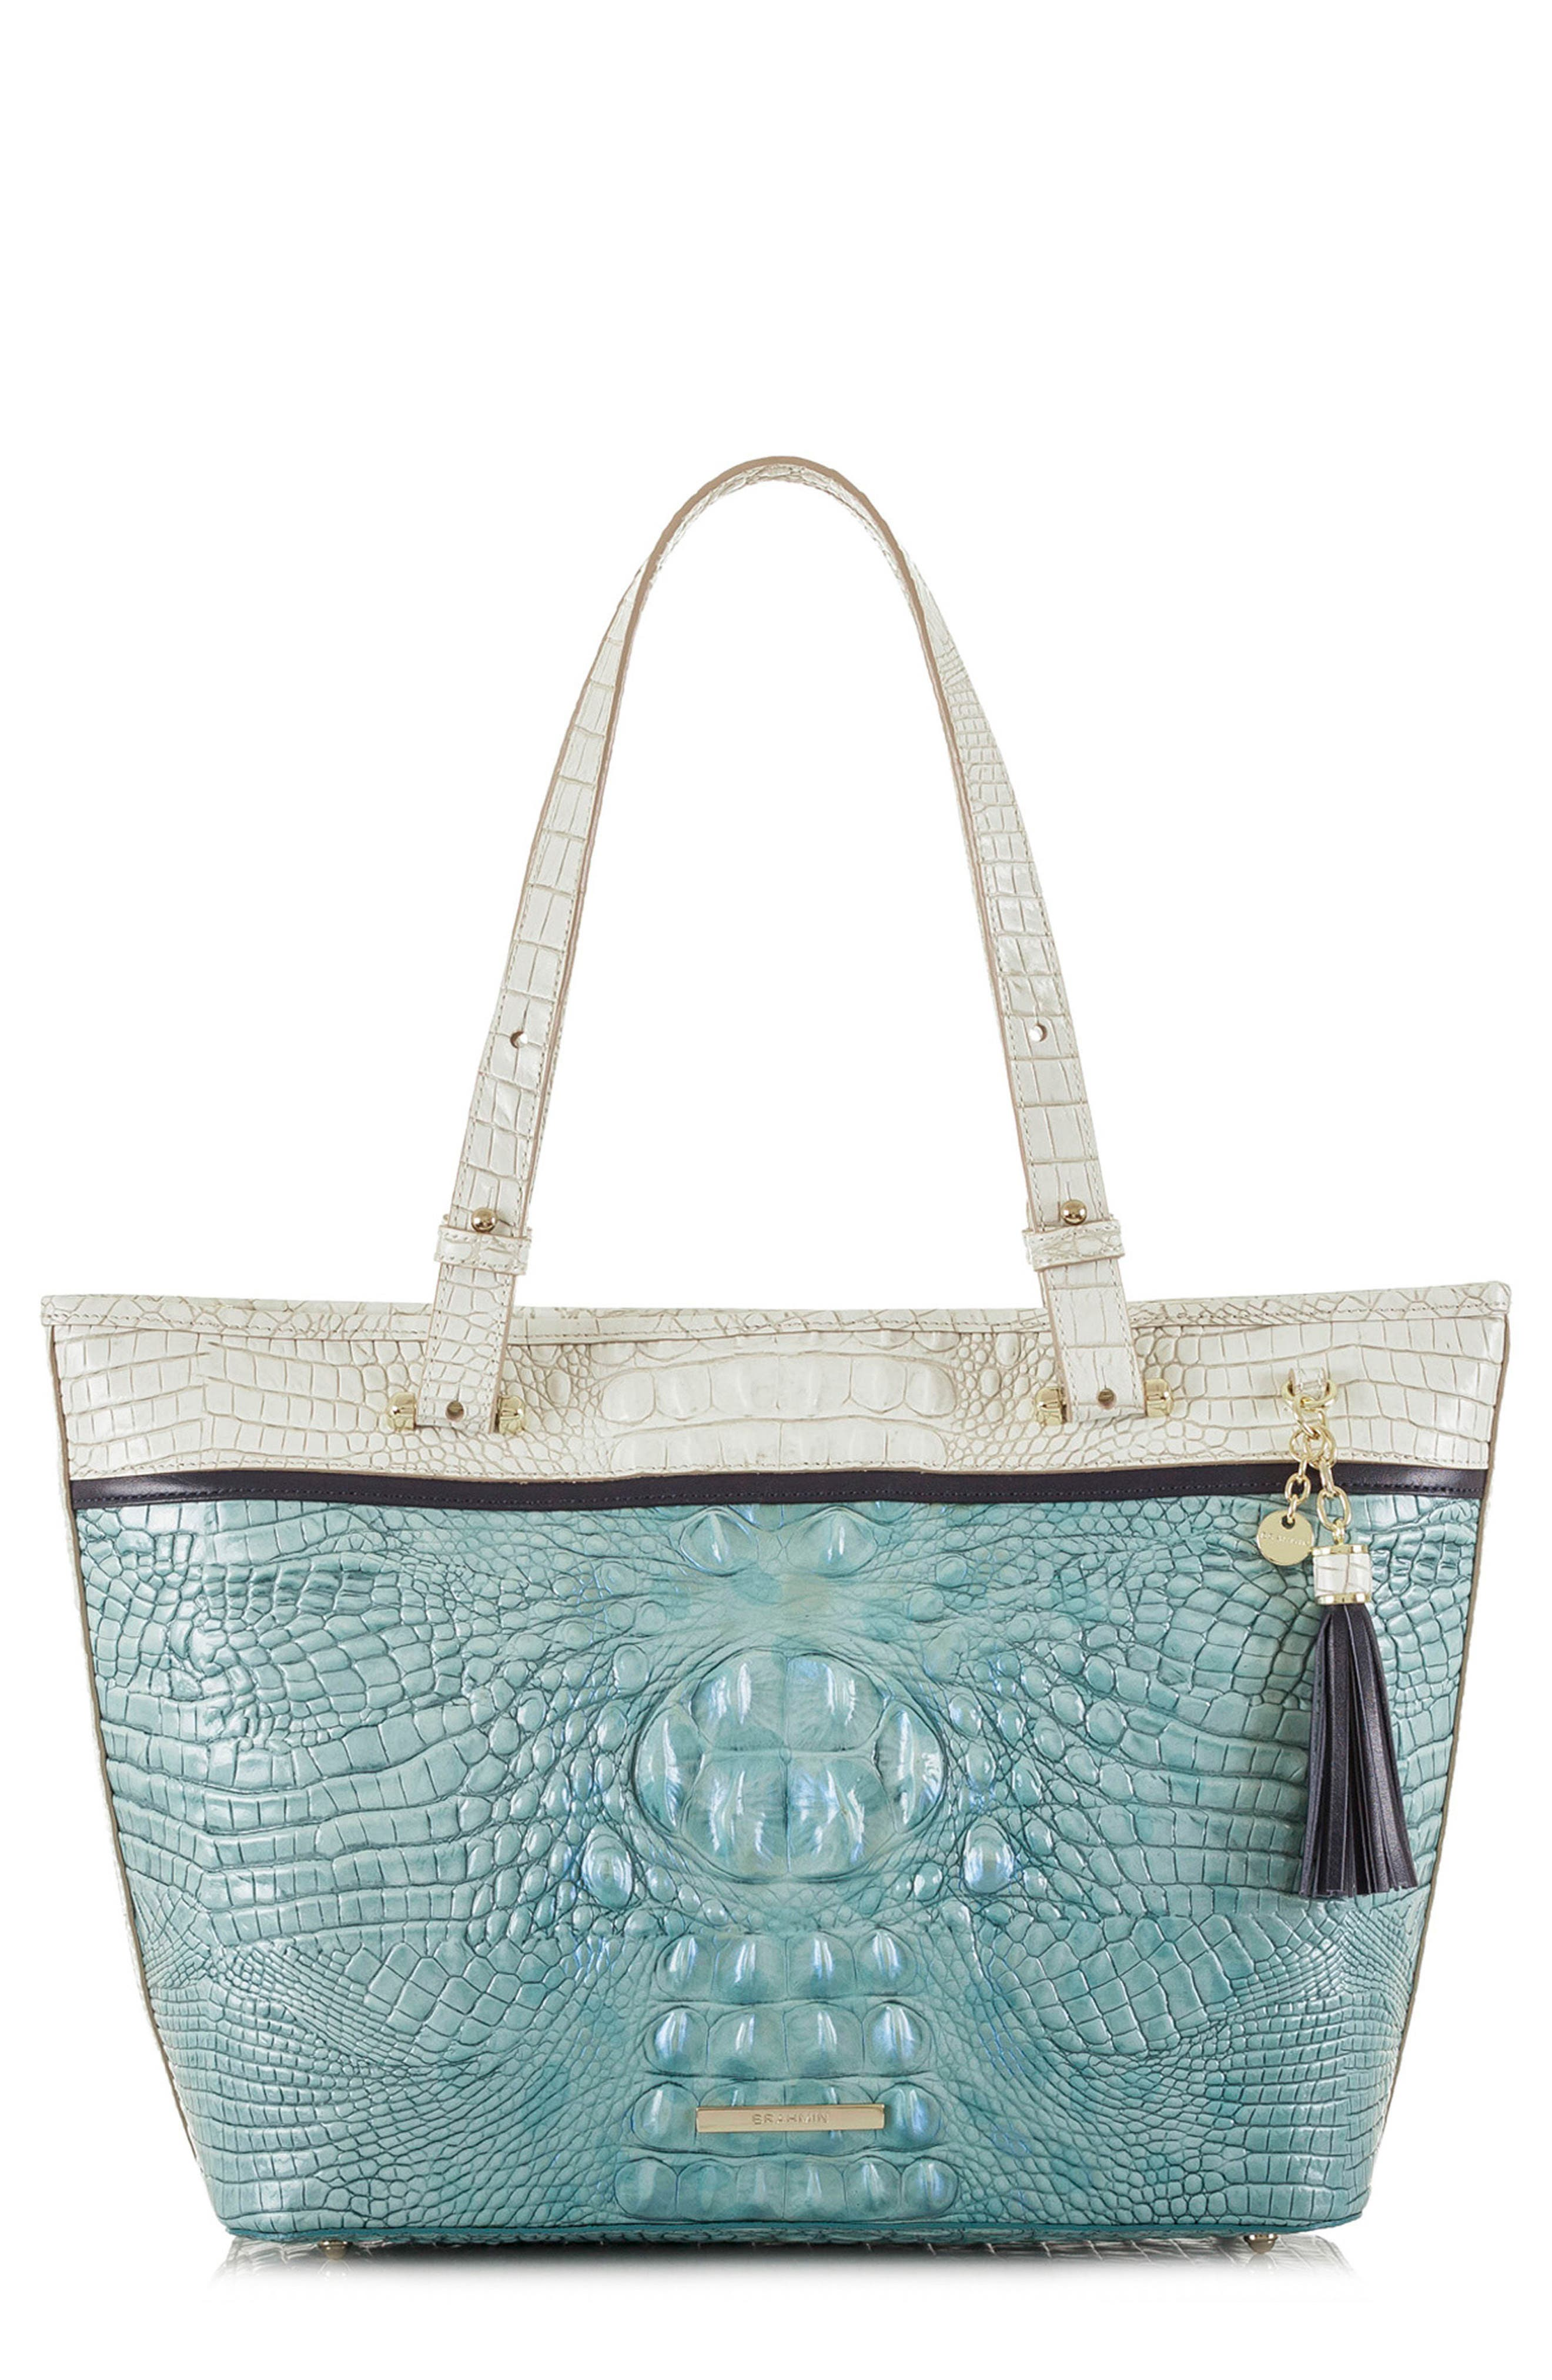 Medium Asher Embossed Leather Tote,                             Main thumbnail 1, color,